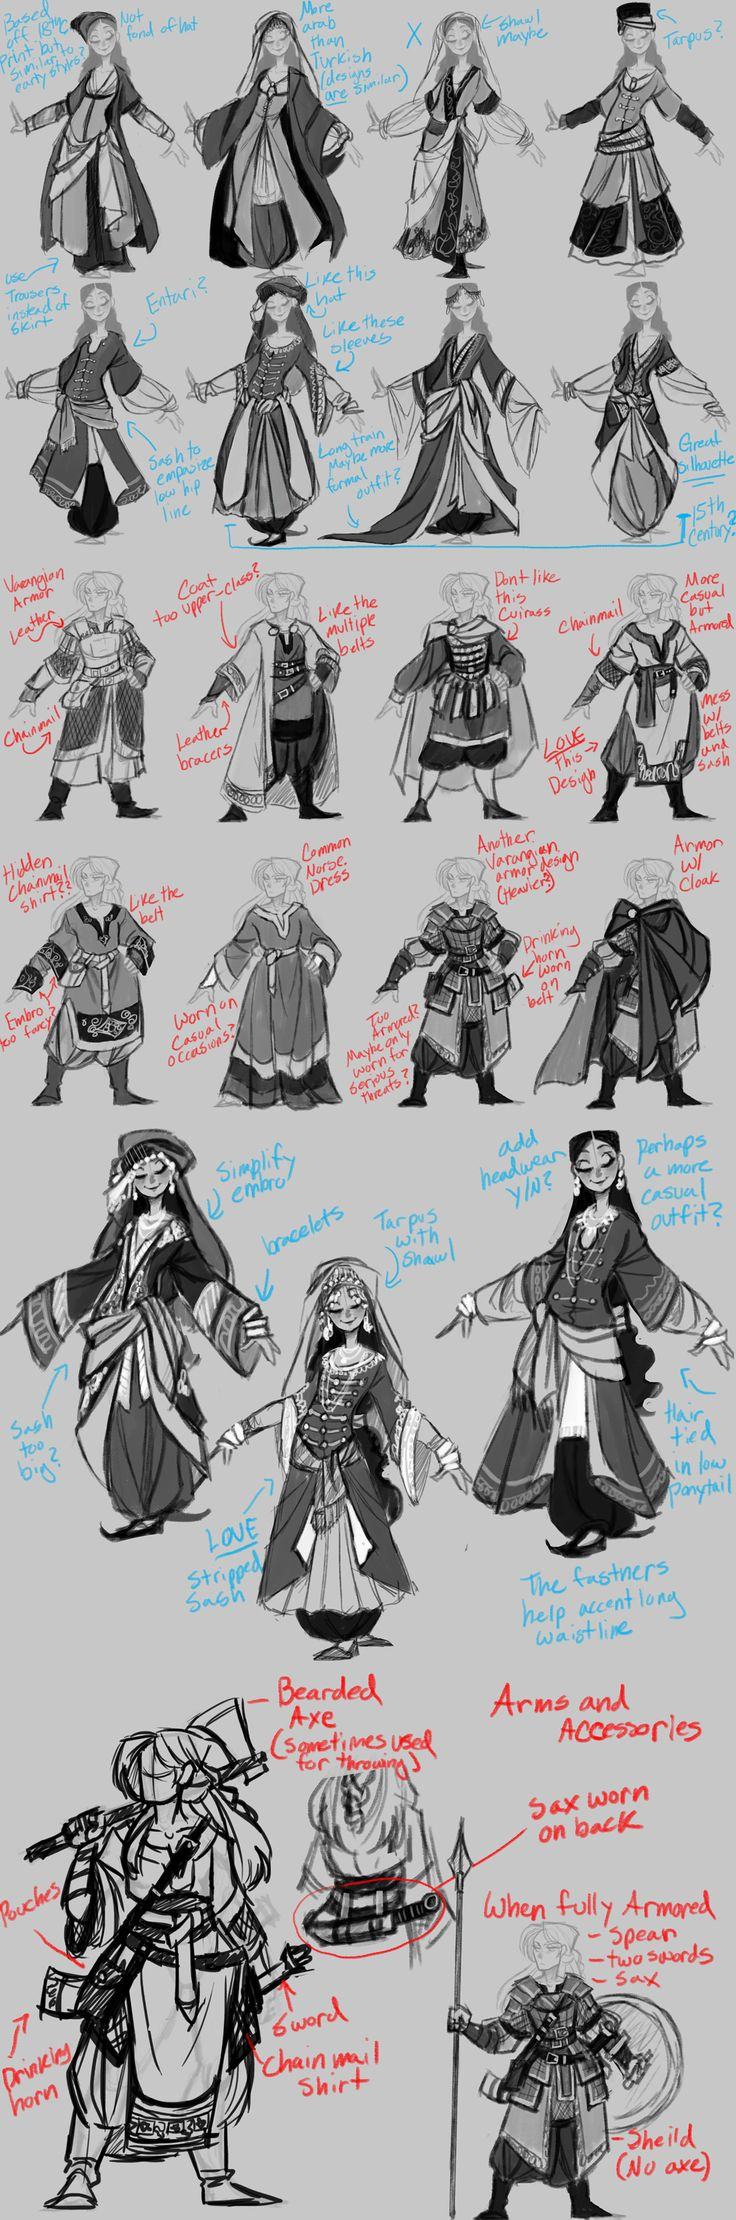 College Work: Alara and Dagny Concepts Pt. 2 by the-Orator.deviantart.com on @DeviantArt